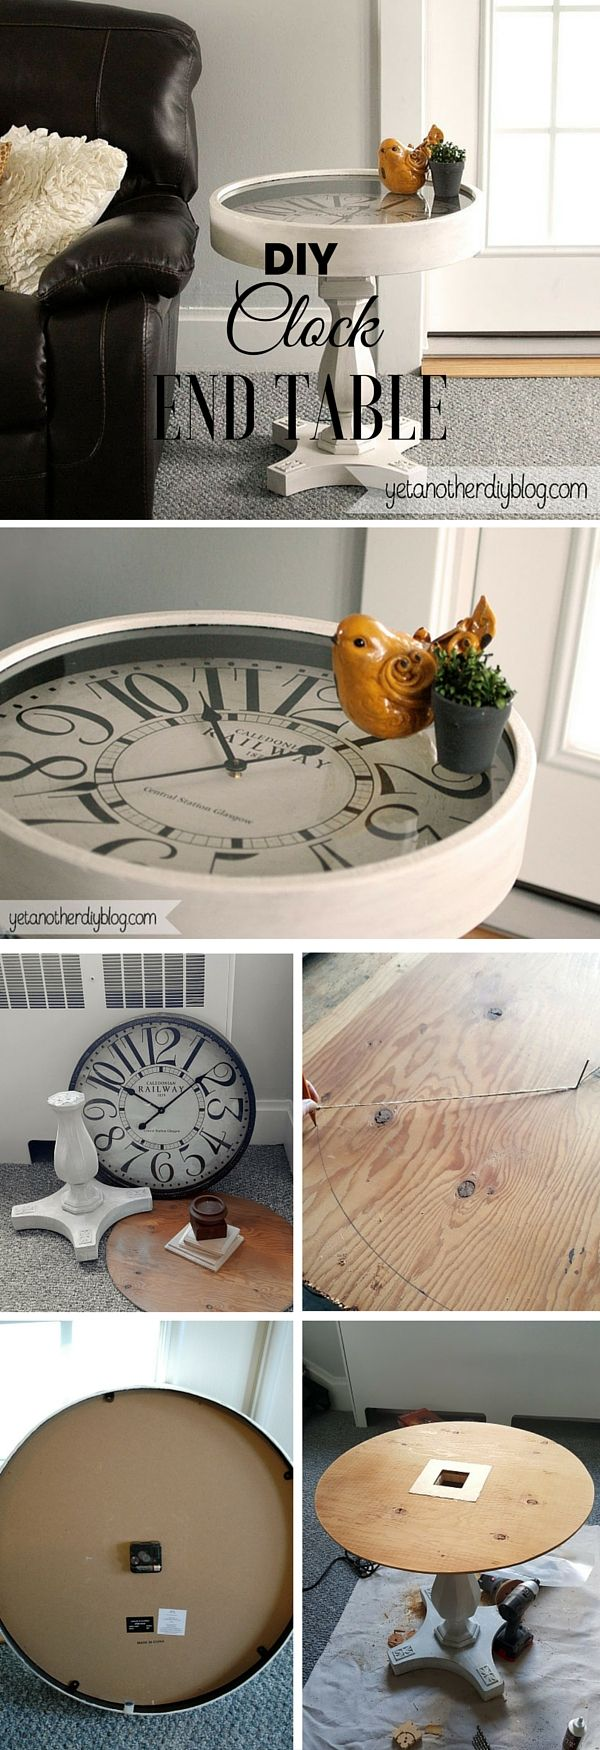 Check out the tutorial: #DIY Clock End Table @istandarddesign